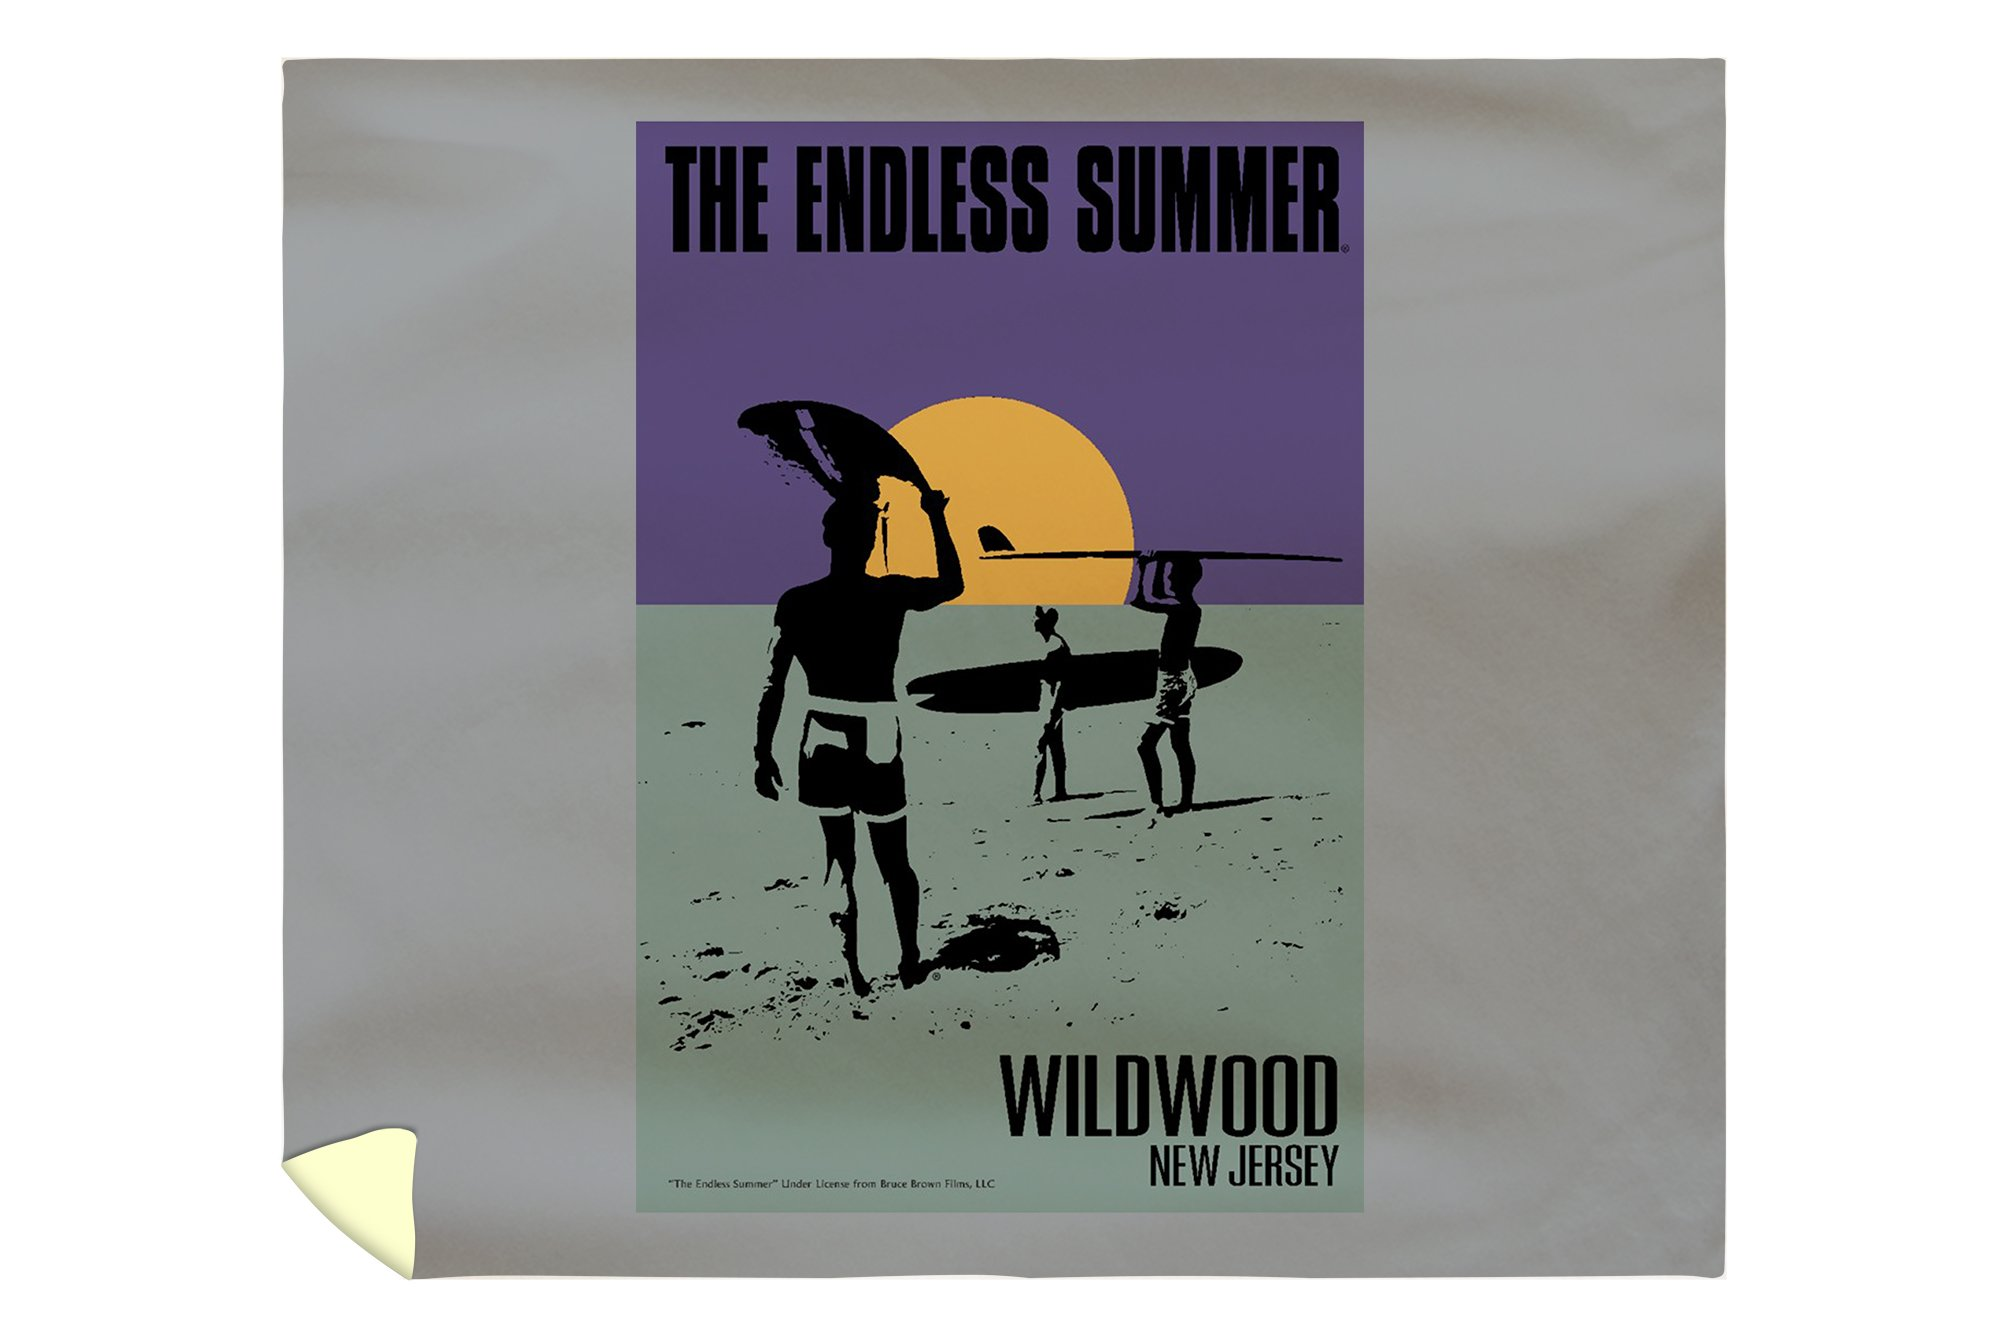 Wildwood, New Jersey - The Endless Summer - Purple and Teal - Original Movie Poster (88x104 King Microfiber Duvet Cover)